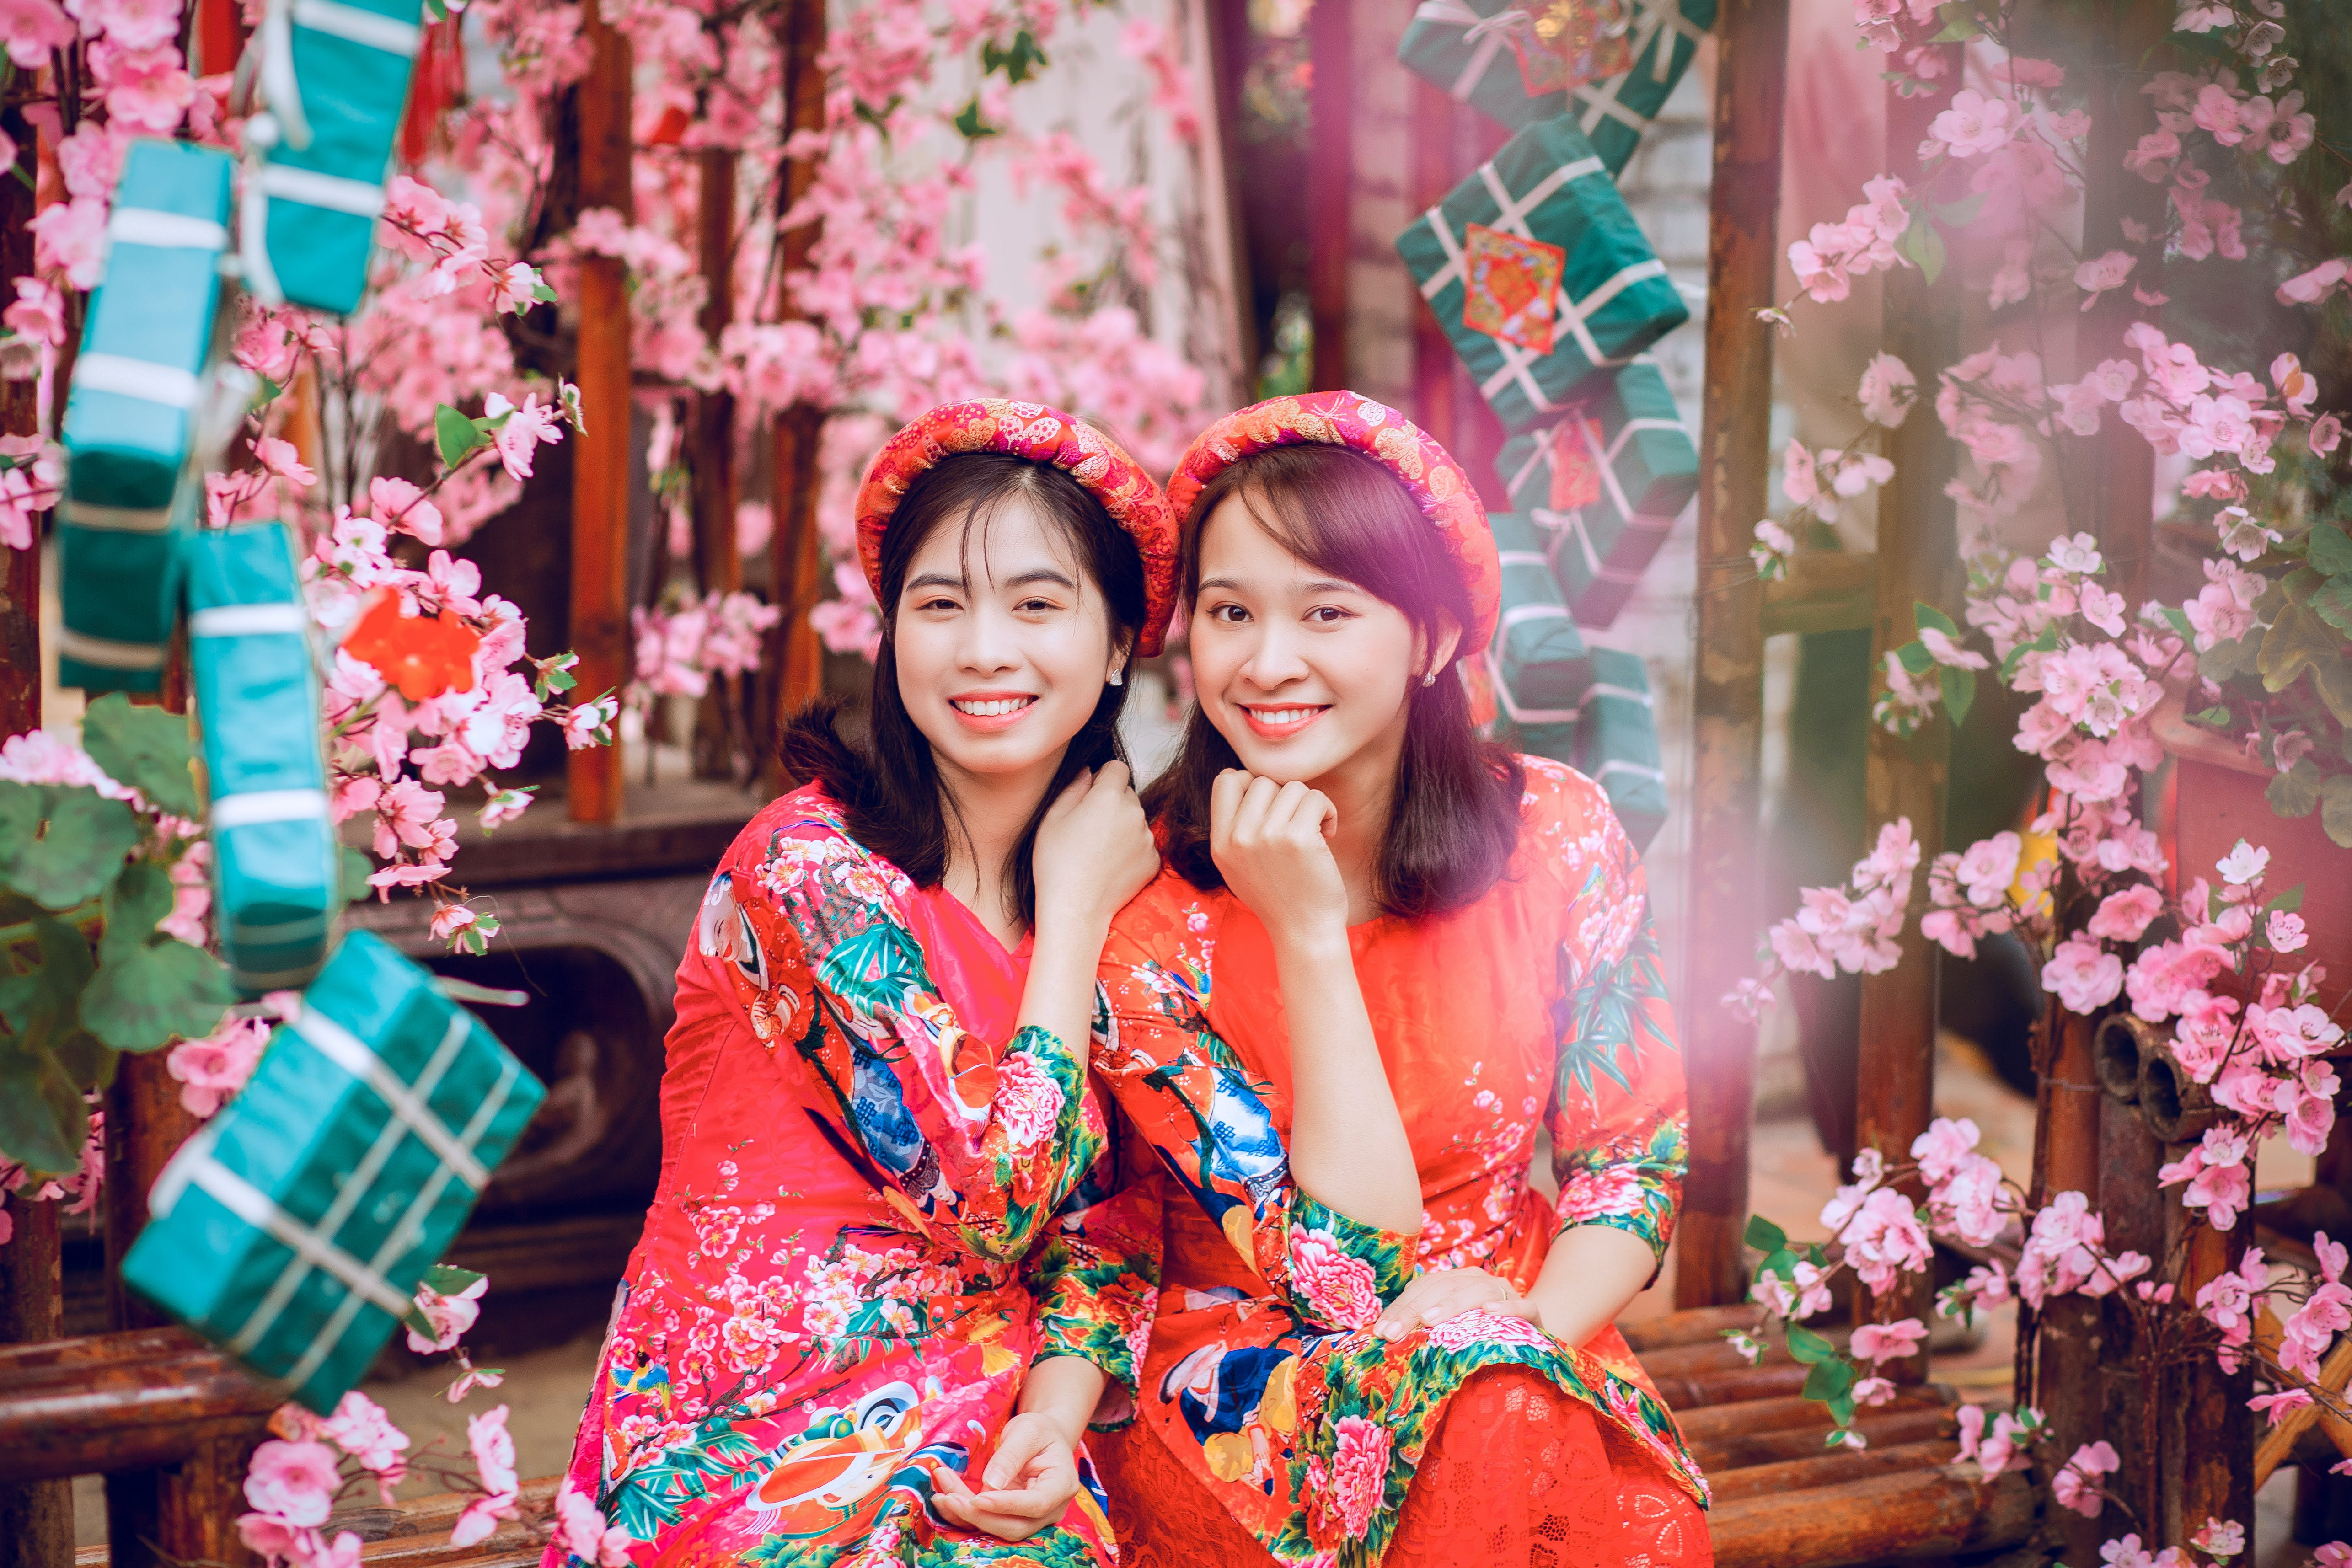 Photo of Girls Wearing Floral Dress